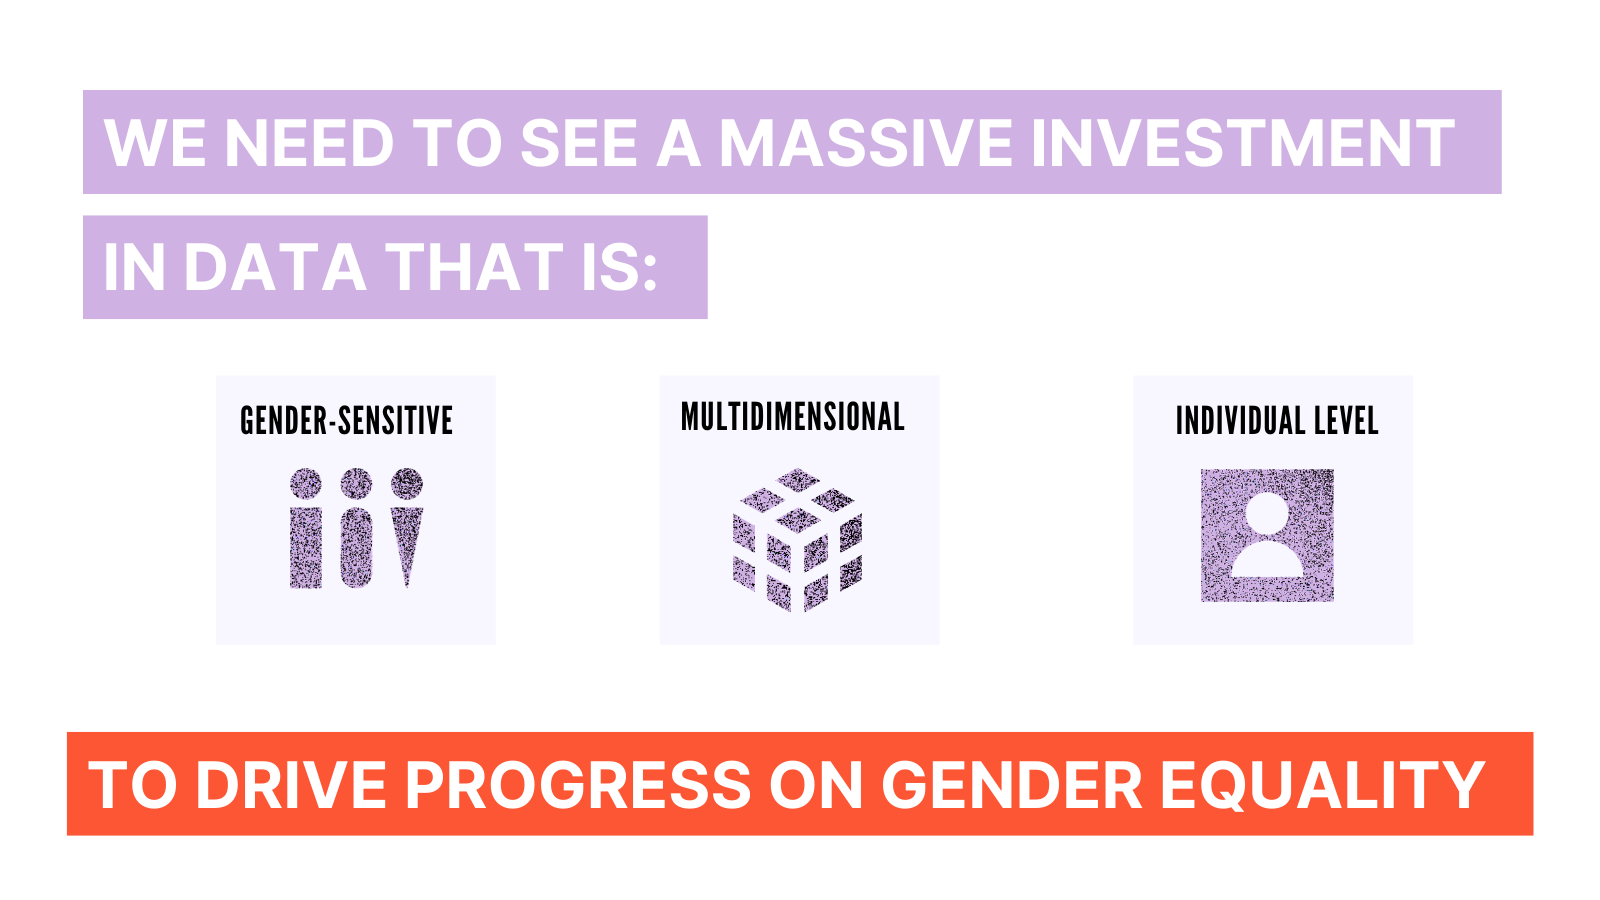 """""""We need to see a massive investment in data that is: gender-sensitive, multidimensional, individual-level to drive progress on gender equality."""" There are purple icons representing gender-sensitive, multidimensional, individual-level."""""""